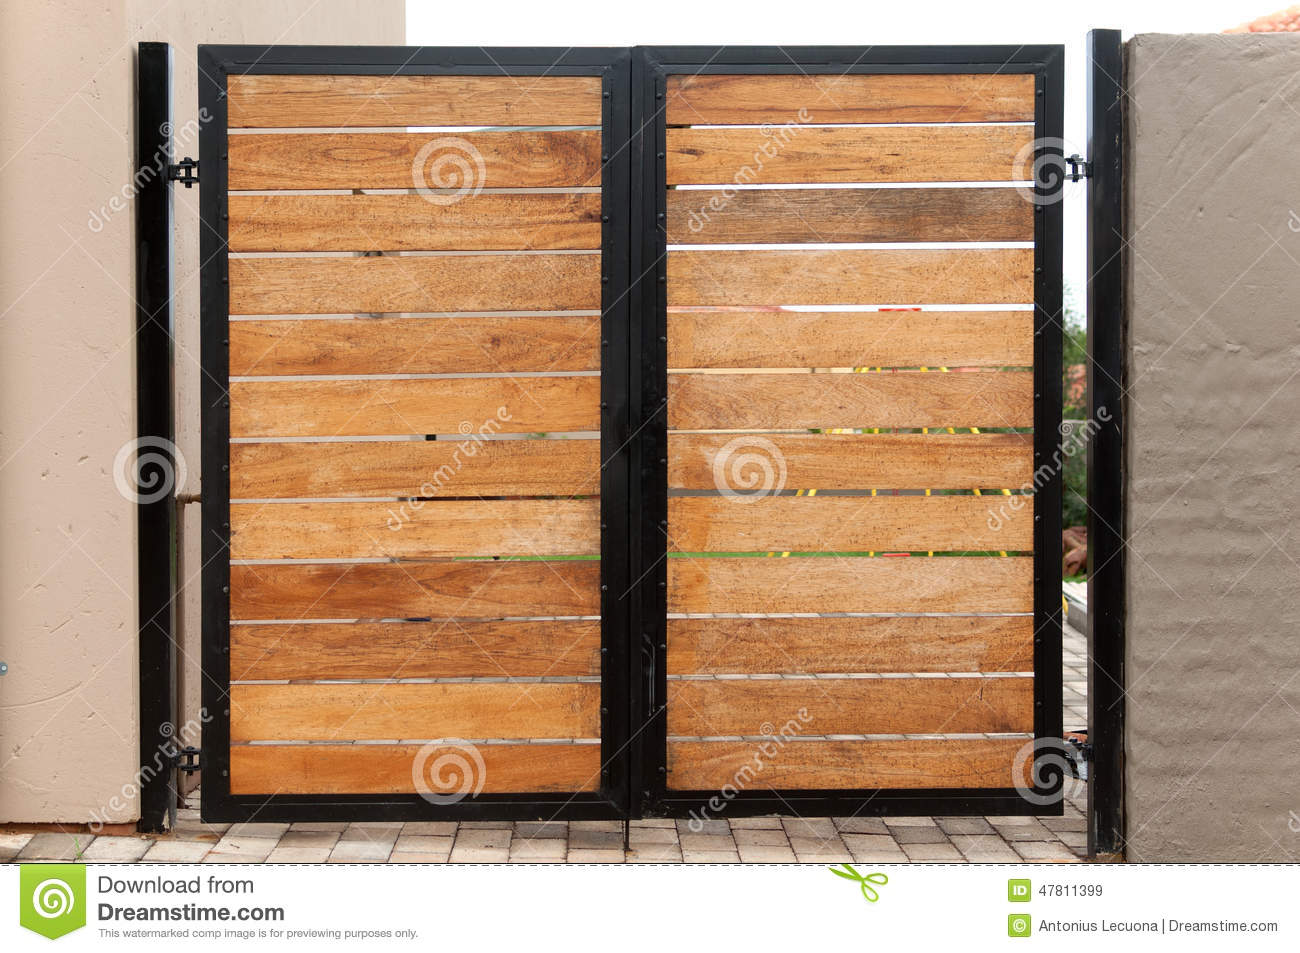 Garden Gate Made Of Wood And Iron Stock Image Image Of